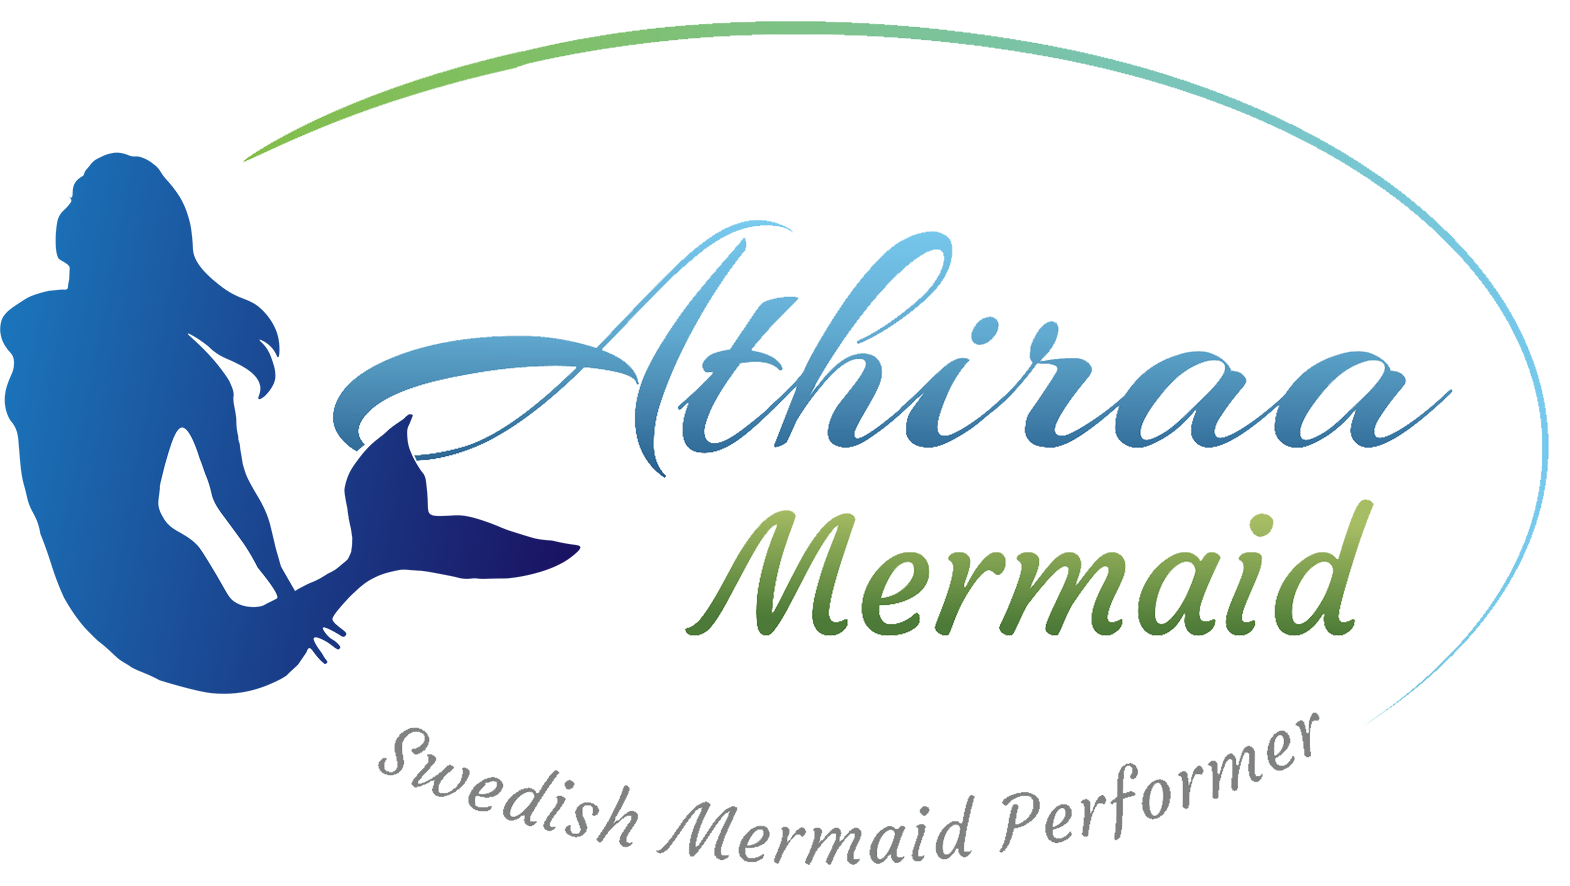 Mermaid performer